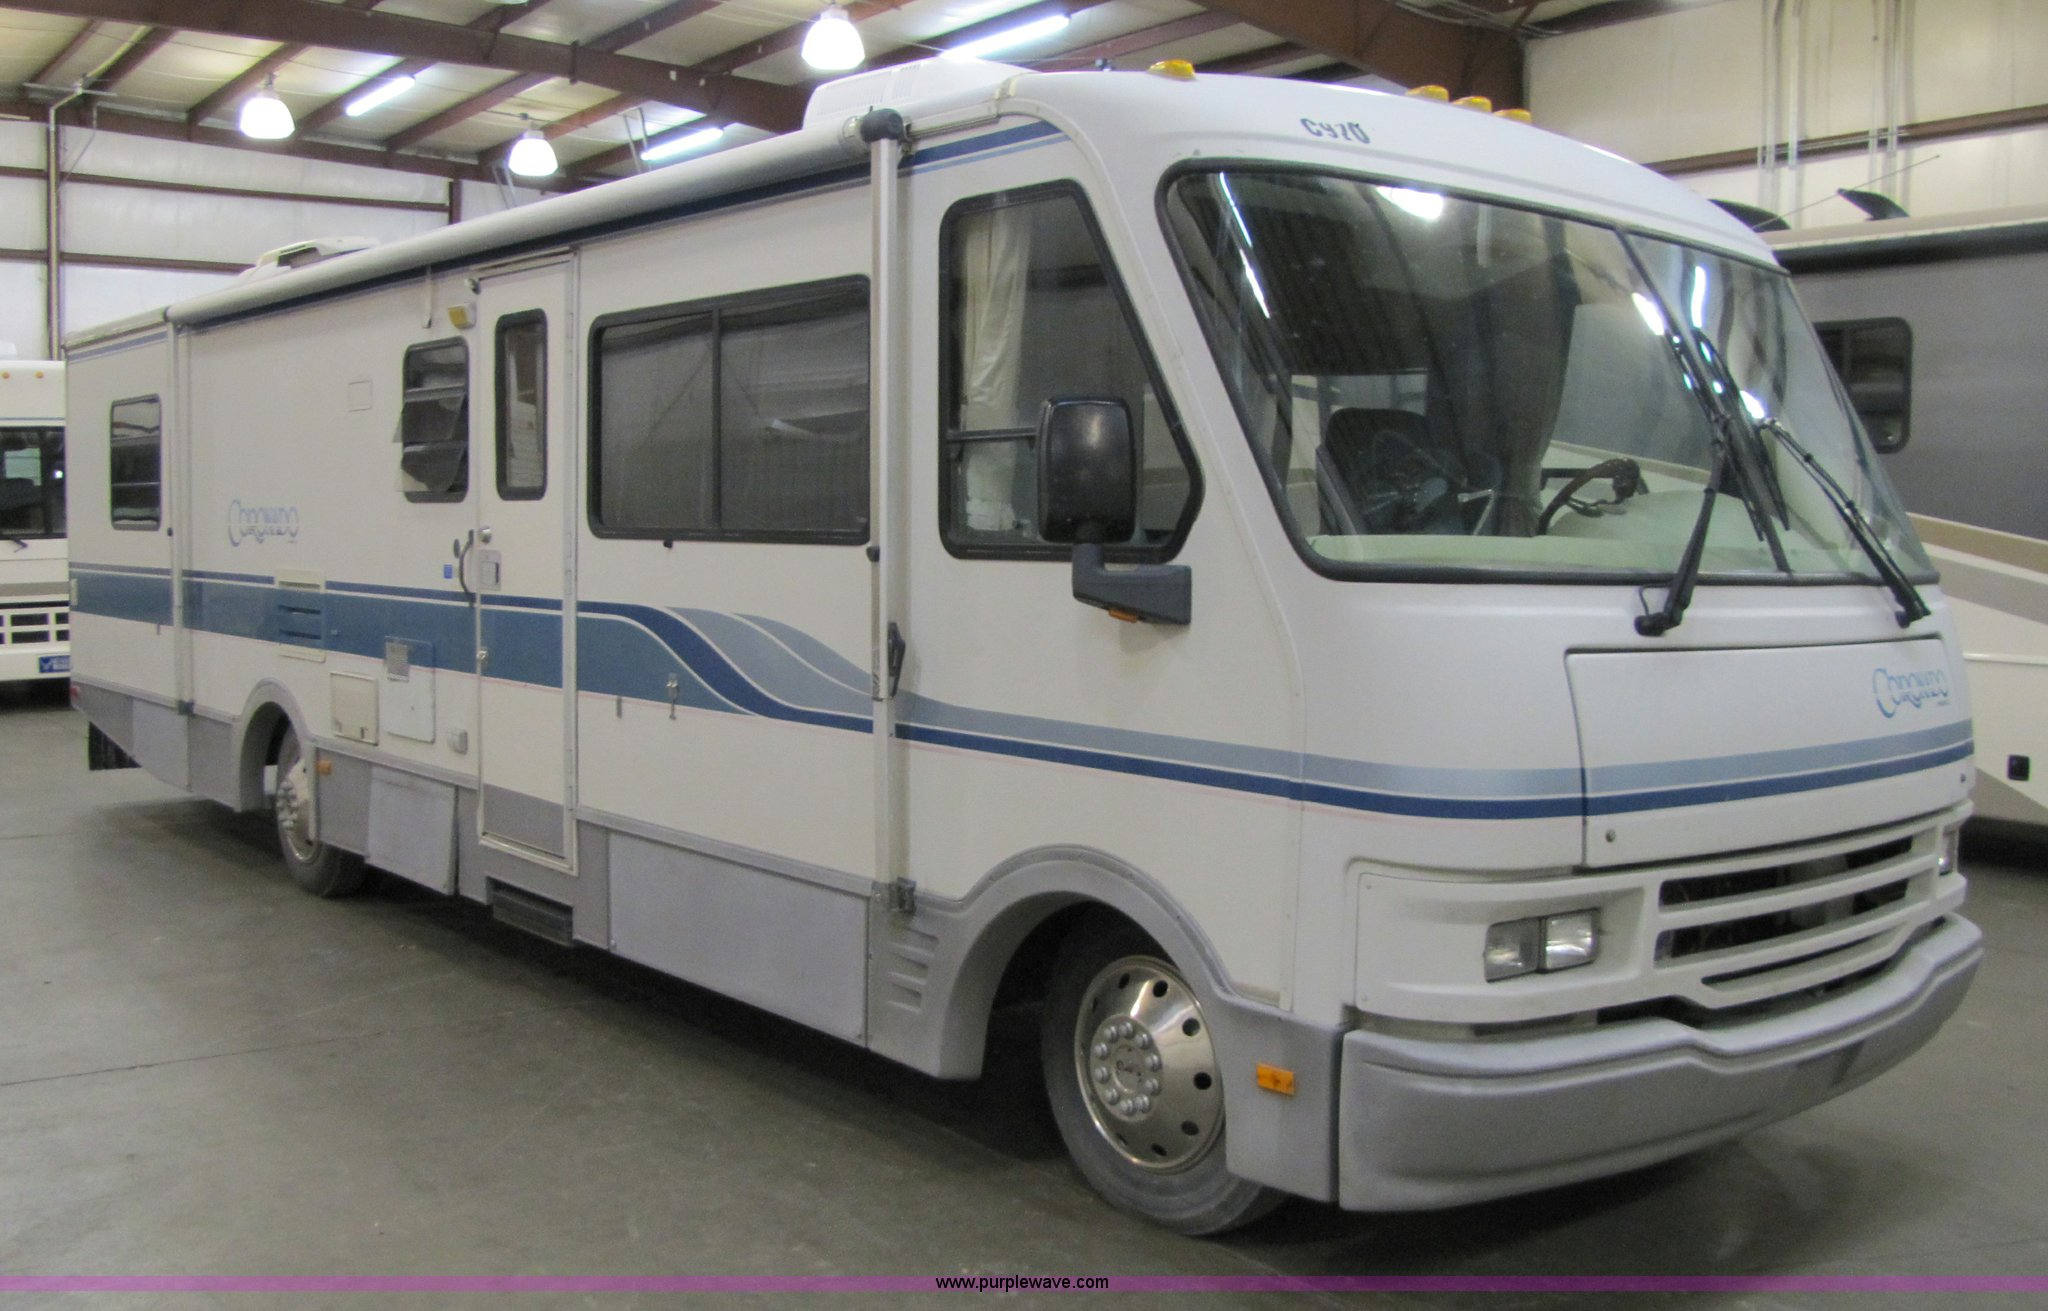 1992 Coronado Motorhome Wiring Diagram Electrical Diagrams Fleelwood Chevrolet P30 Fleetwood Rv Motor Home Item 8